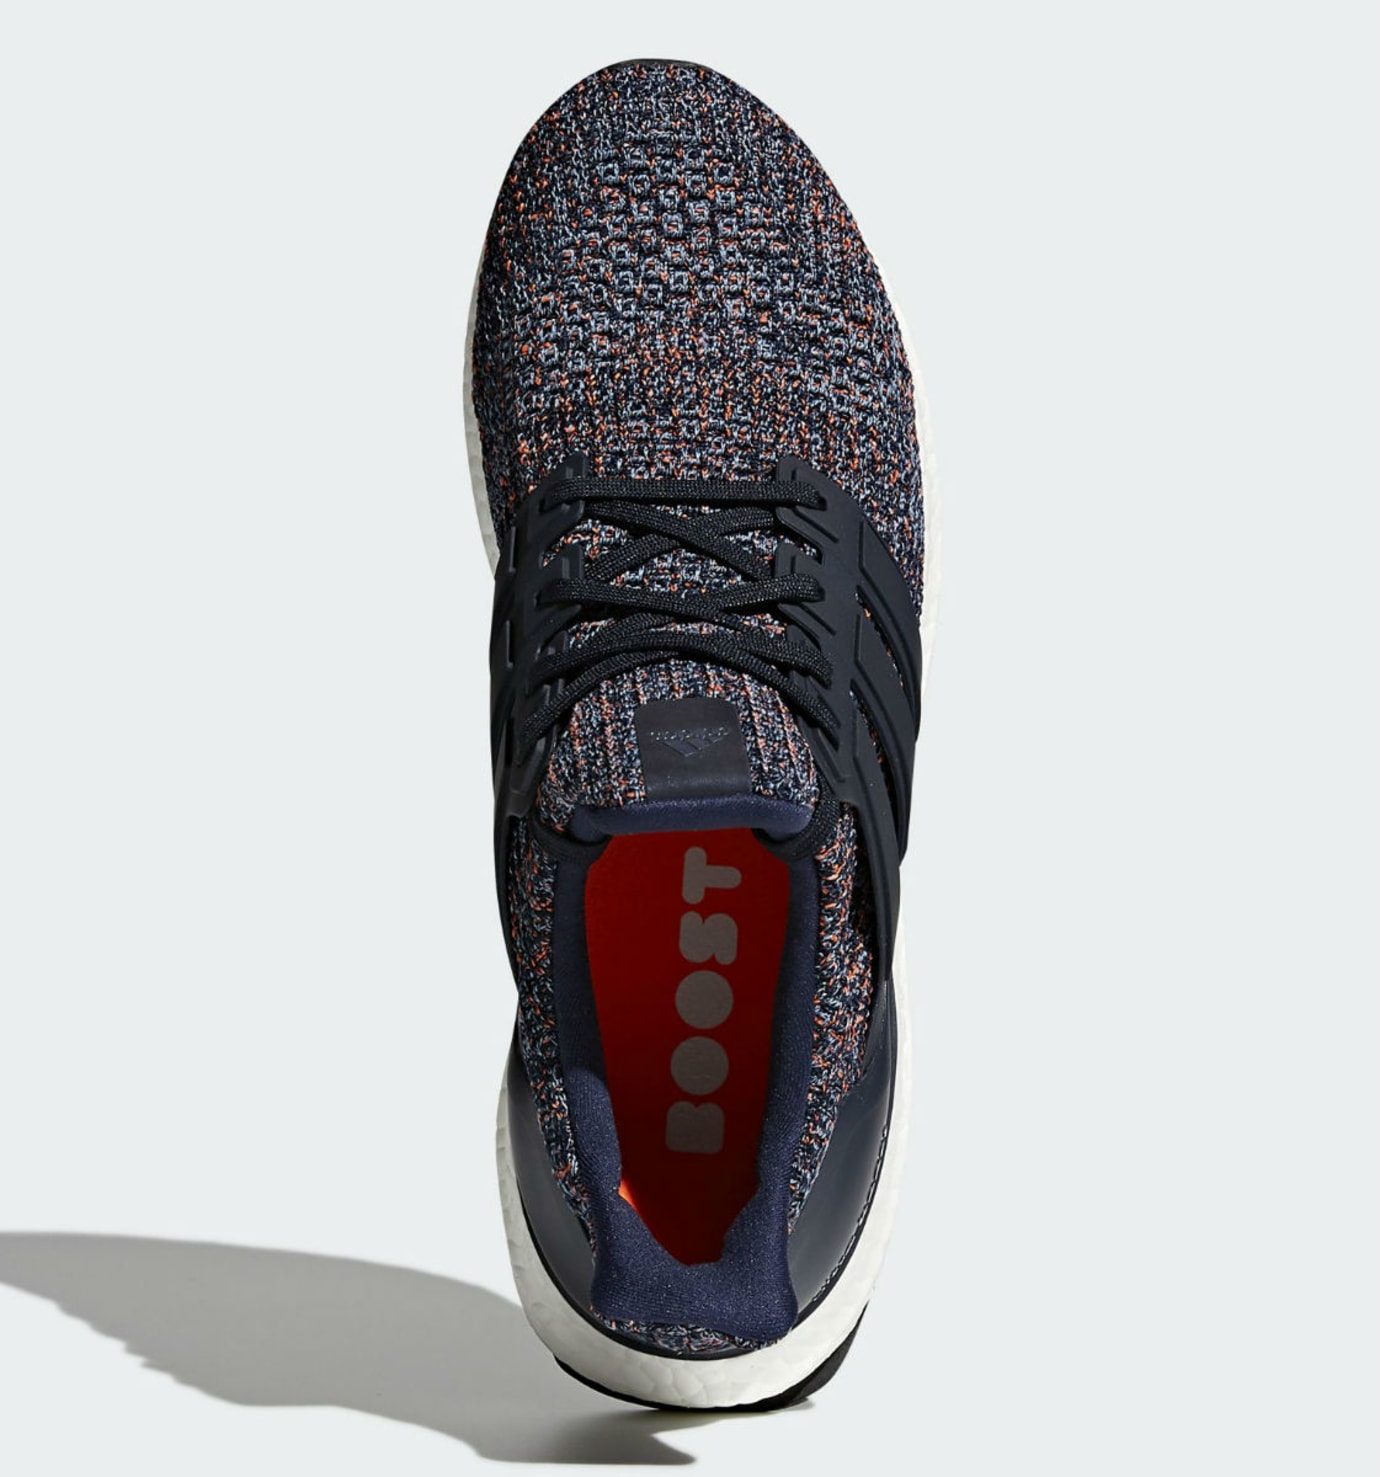 900ef92c1cc04 Adidas Ultra Boost Navy Multicolor BB6165 Release Date Top